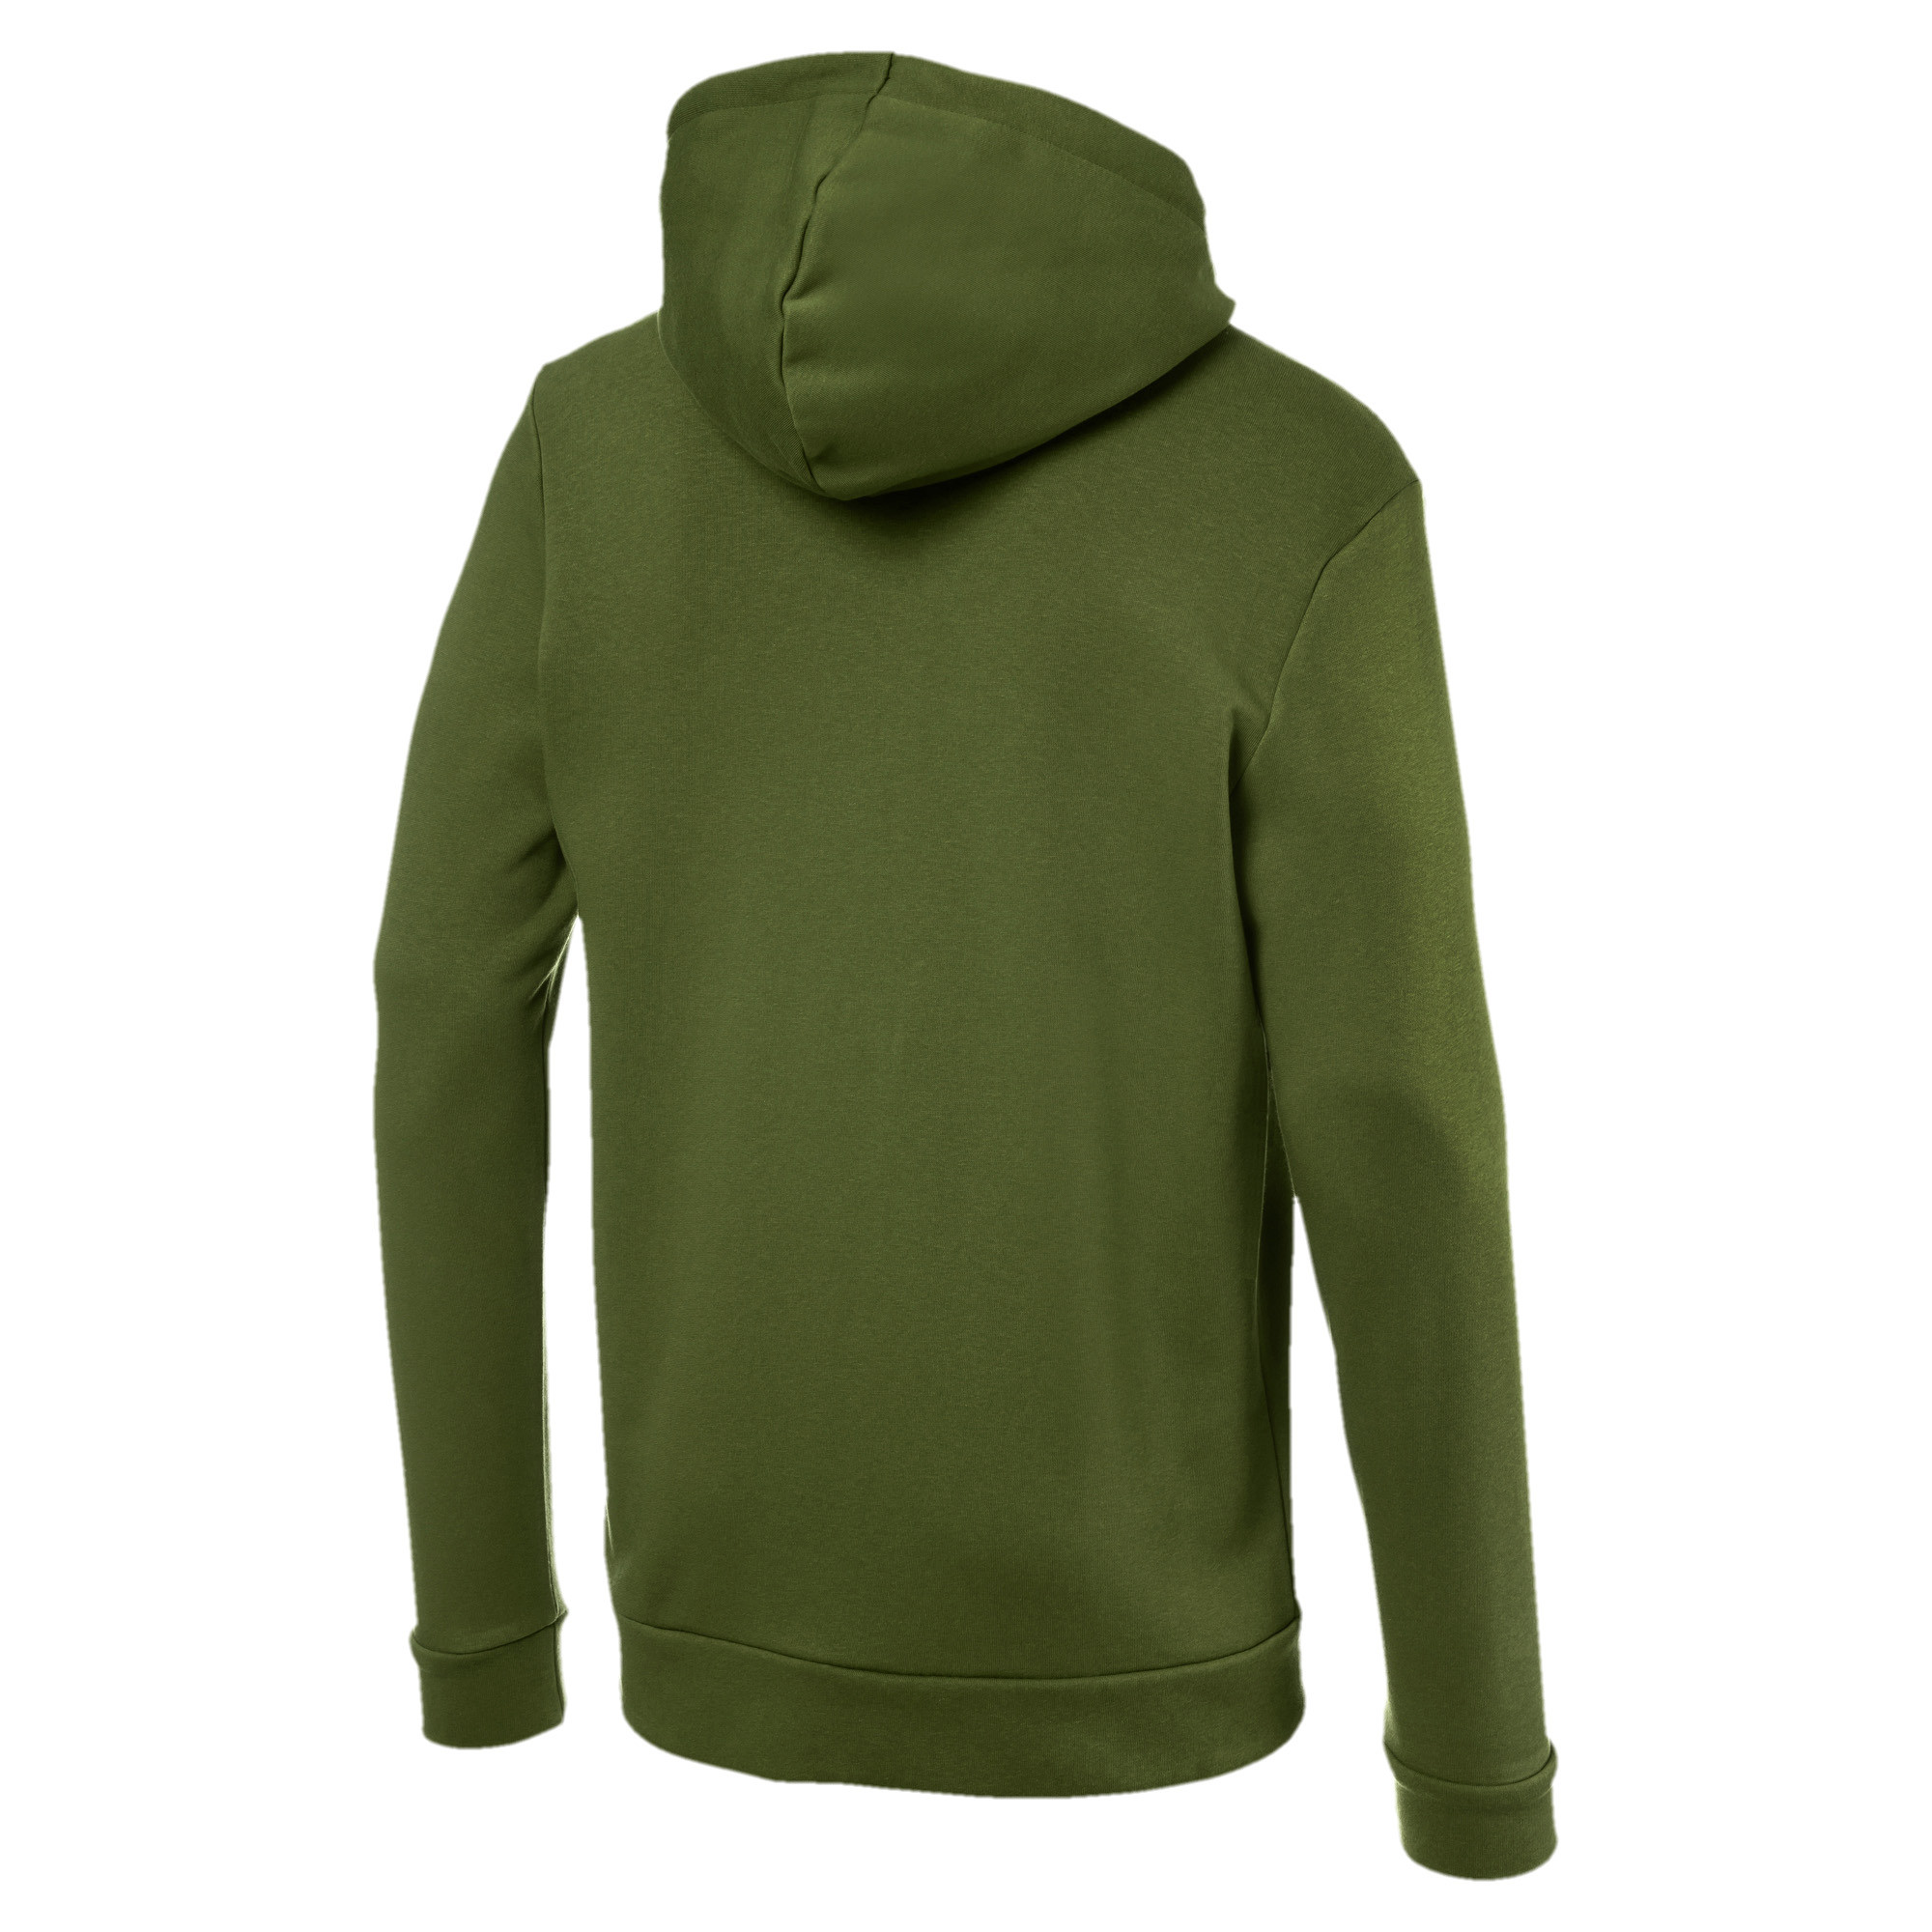 PUMA-Amplified-Men-039-s-Hooded-Jacket-Men-Sweat-Basics thumbnail 17